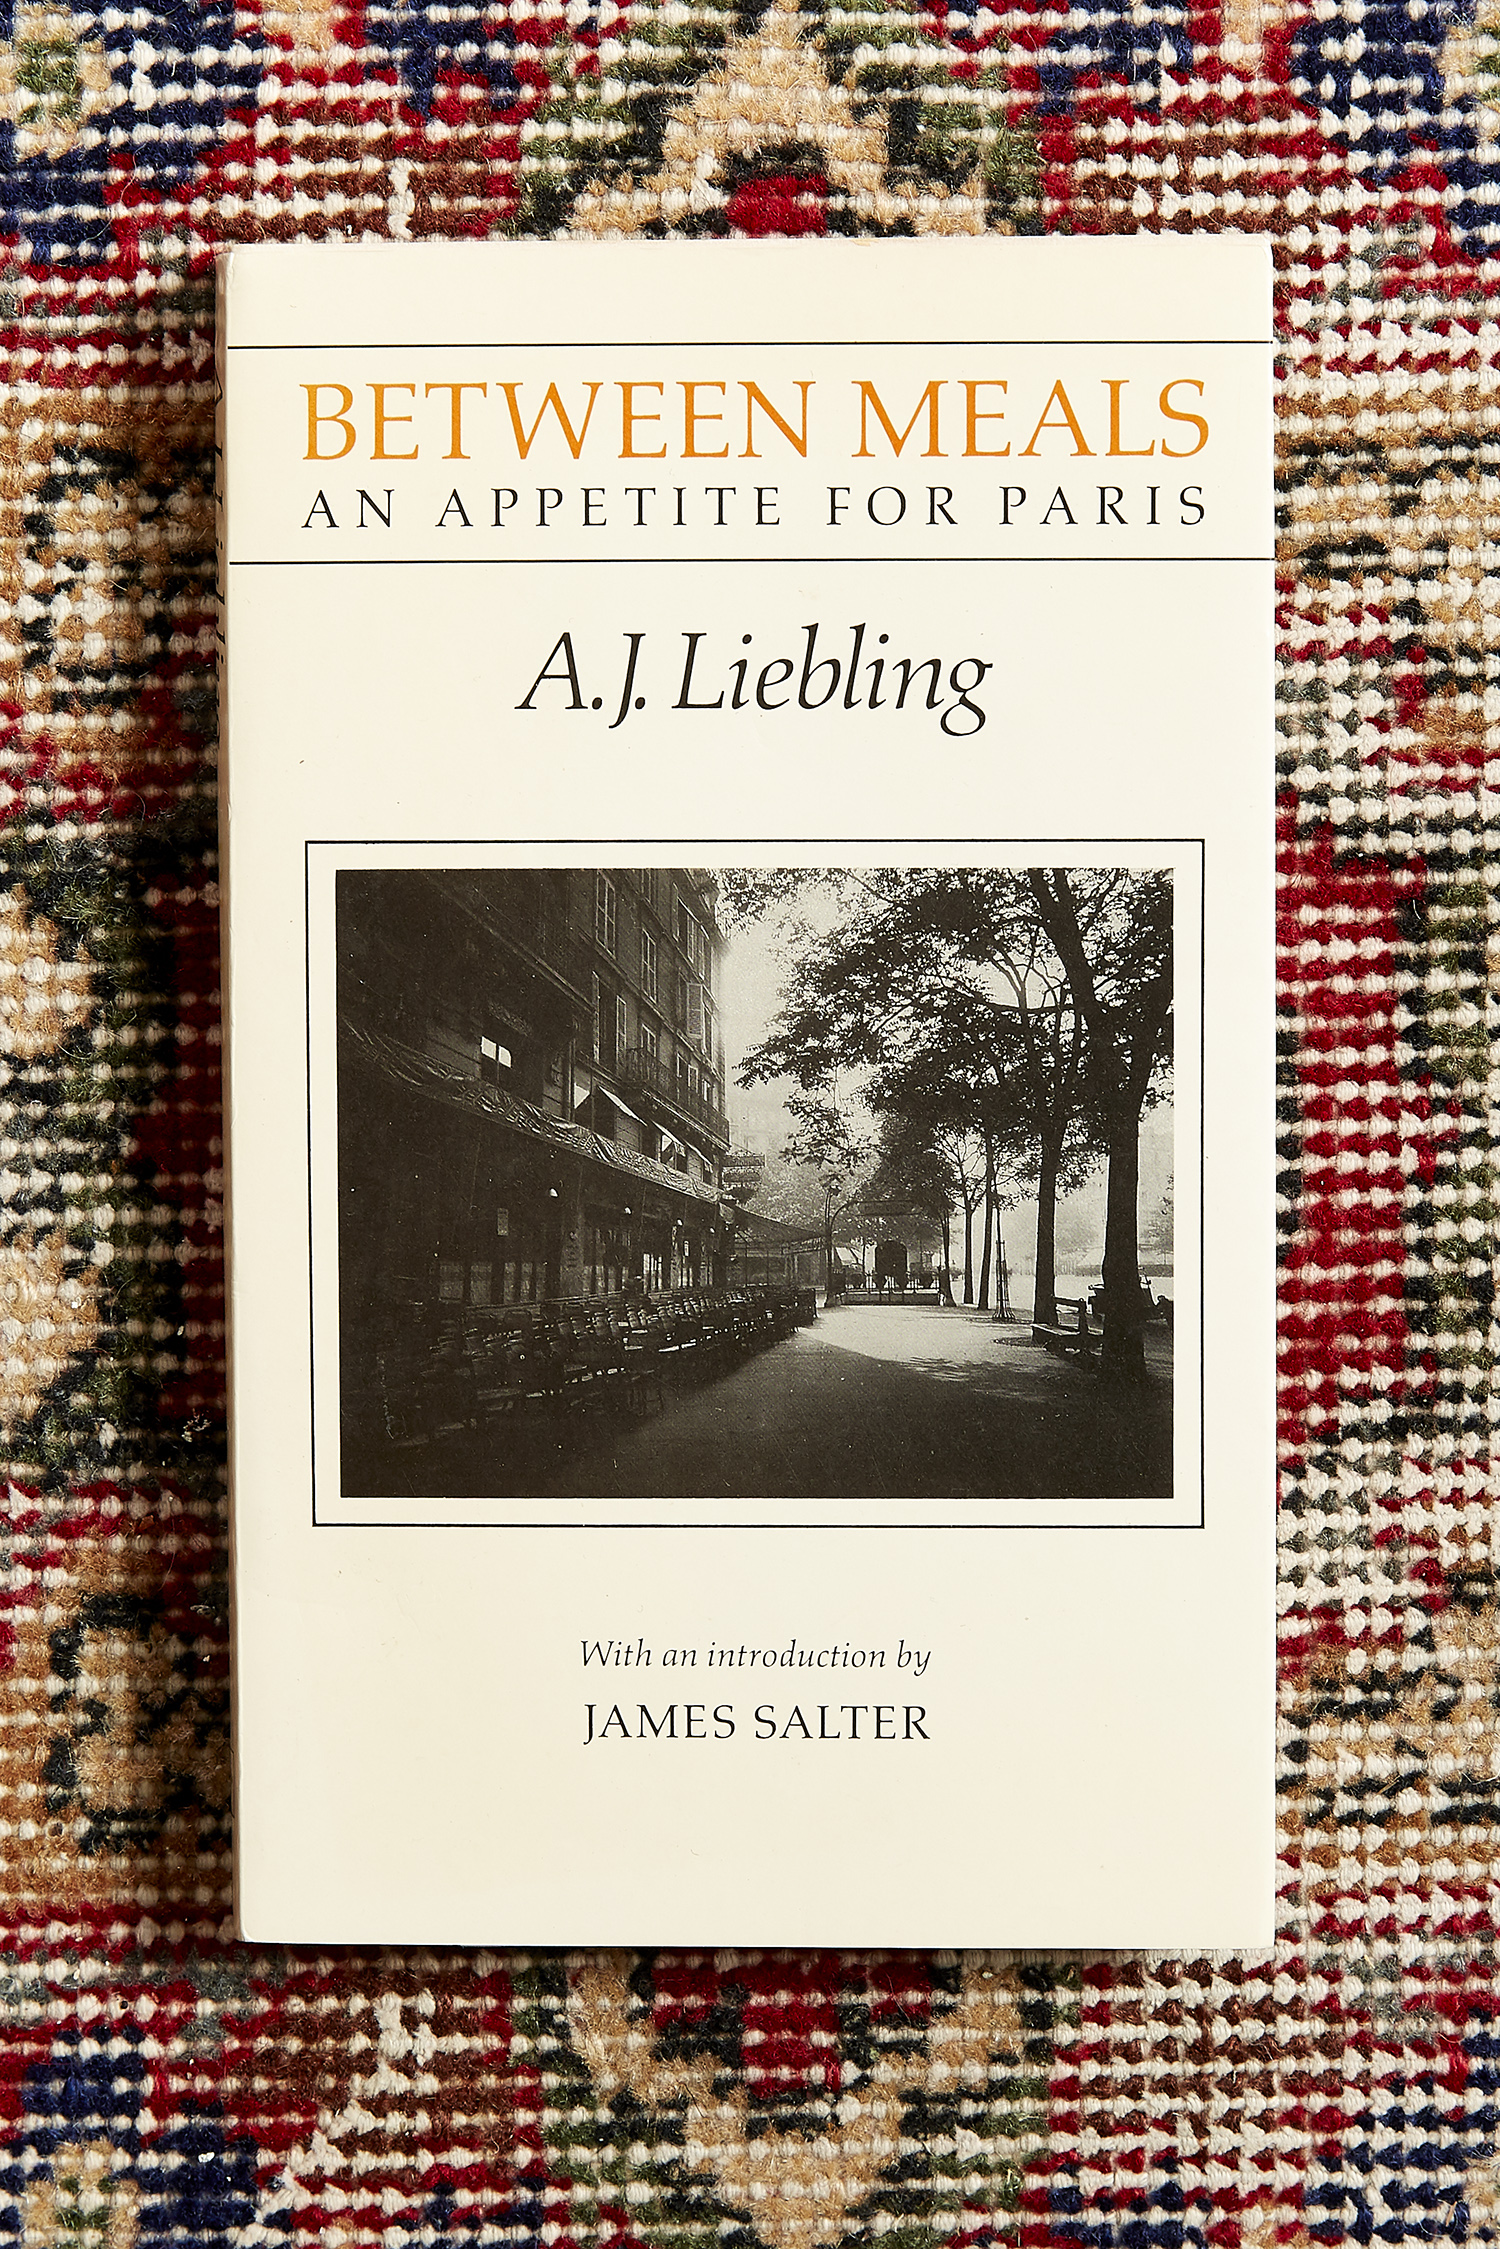 Between Meals by A.J. Leibling